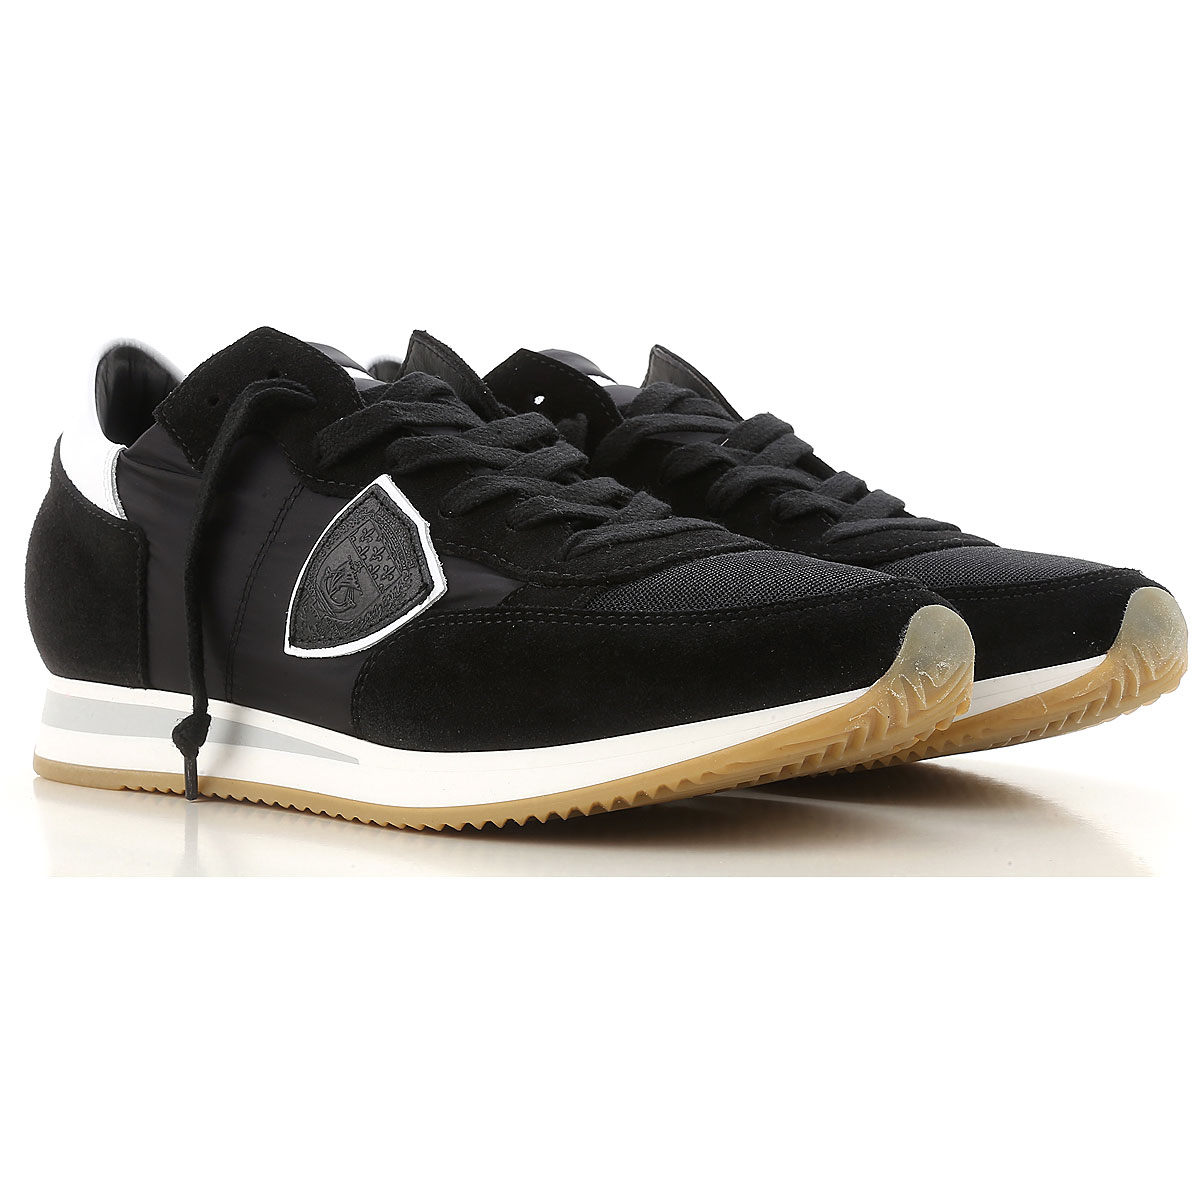 Philippe Model Sneakers for Men On Sale, Black, Suede leather, 2019, 10 11.5 7.5 8 9